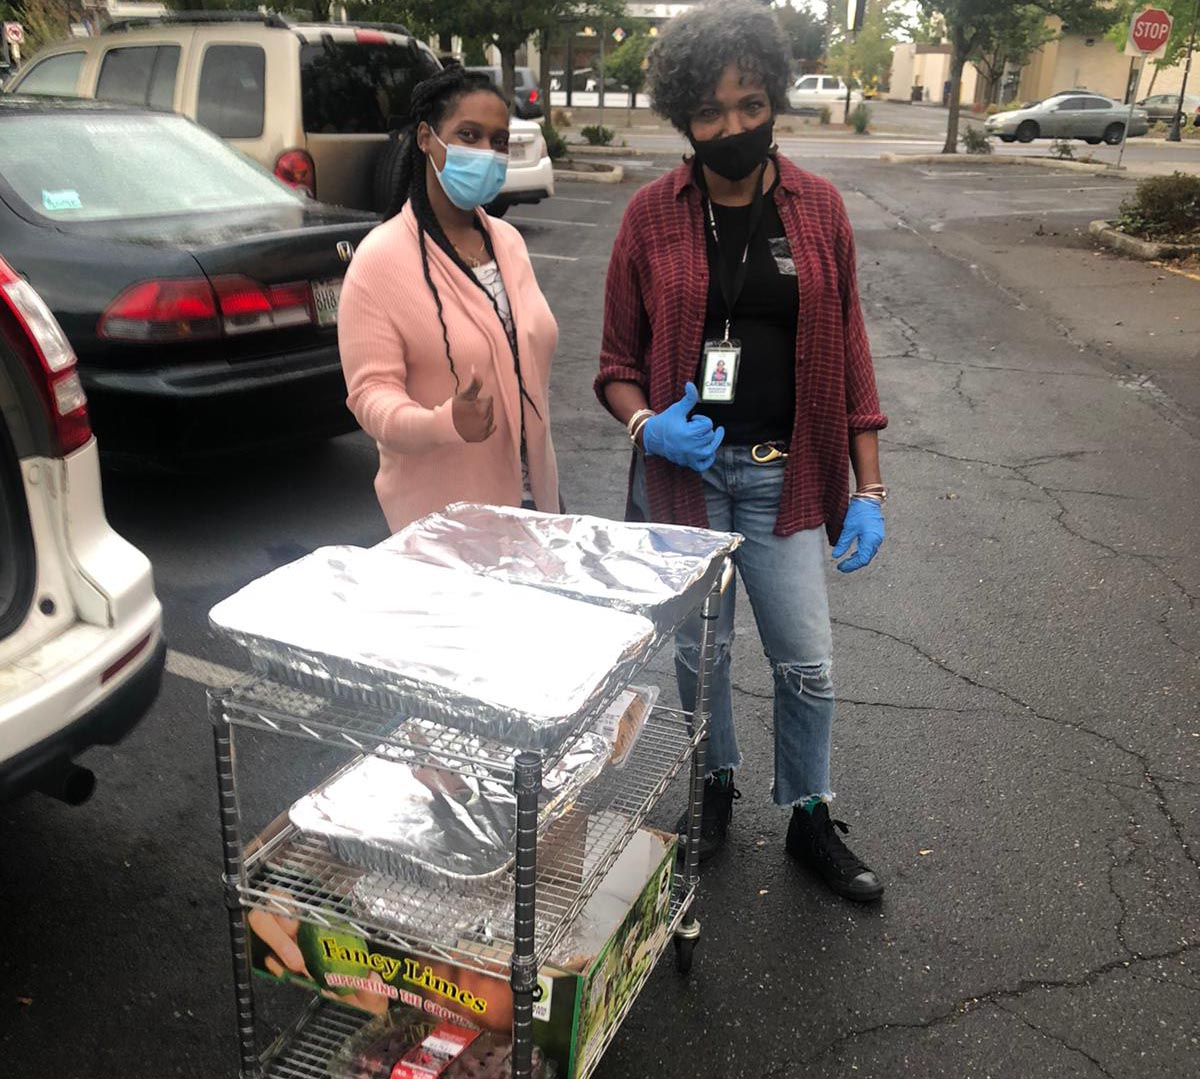 We deliver cooked food at the homeless shelter twice a month